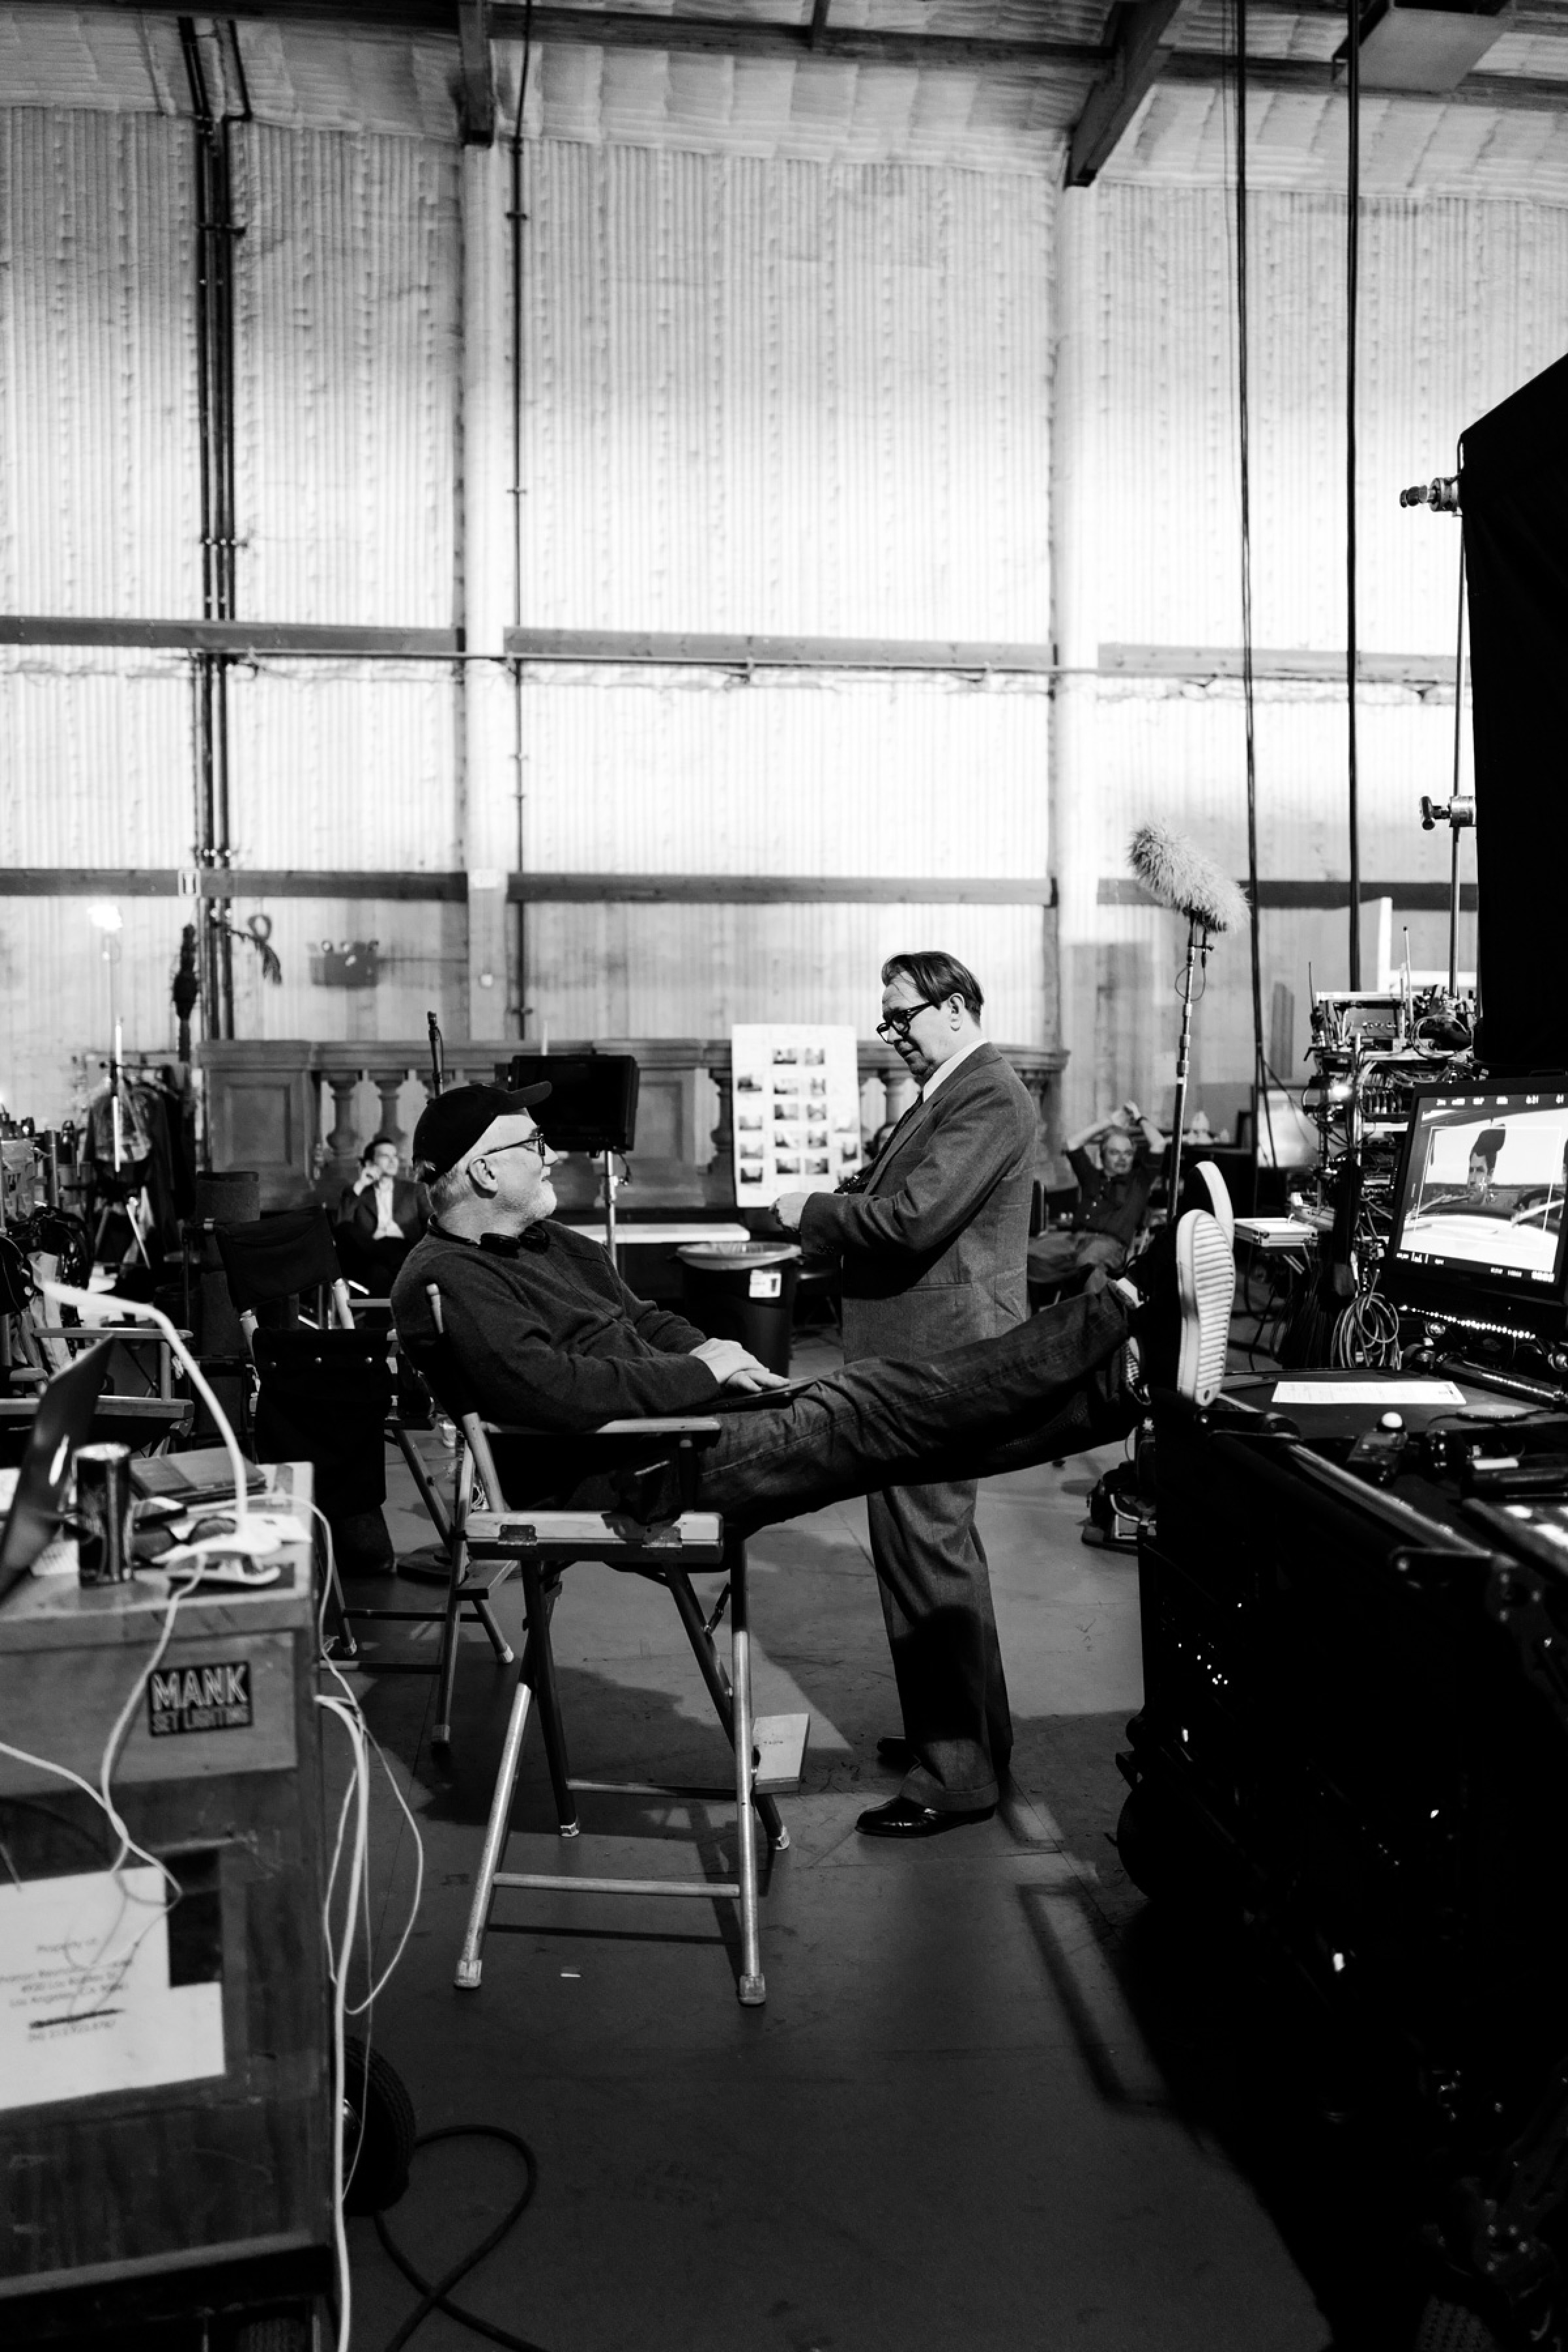 Fincher and Oldman have a chat. Fincher sits in his director's chair, feet up on a table. Oldman stands a few feet in front of him, in costume as Herman Mankiewicz.